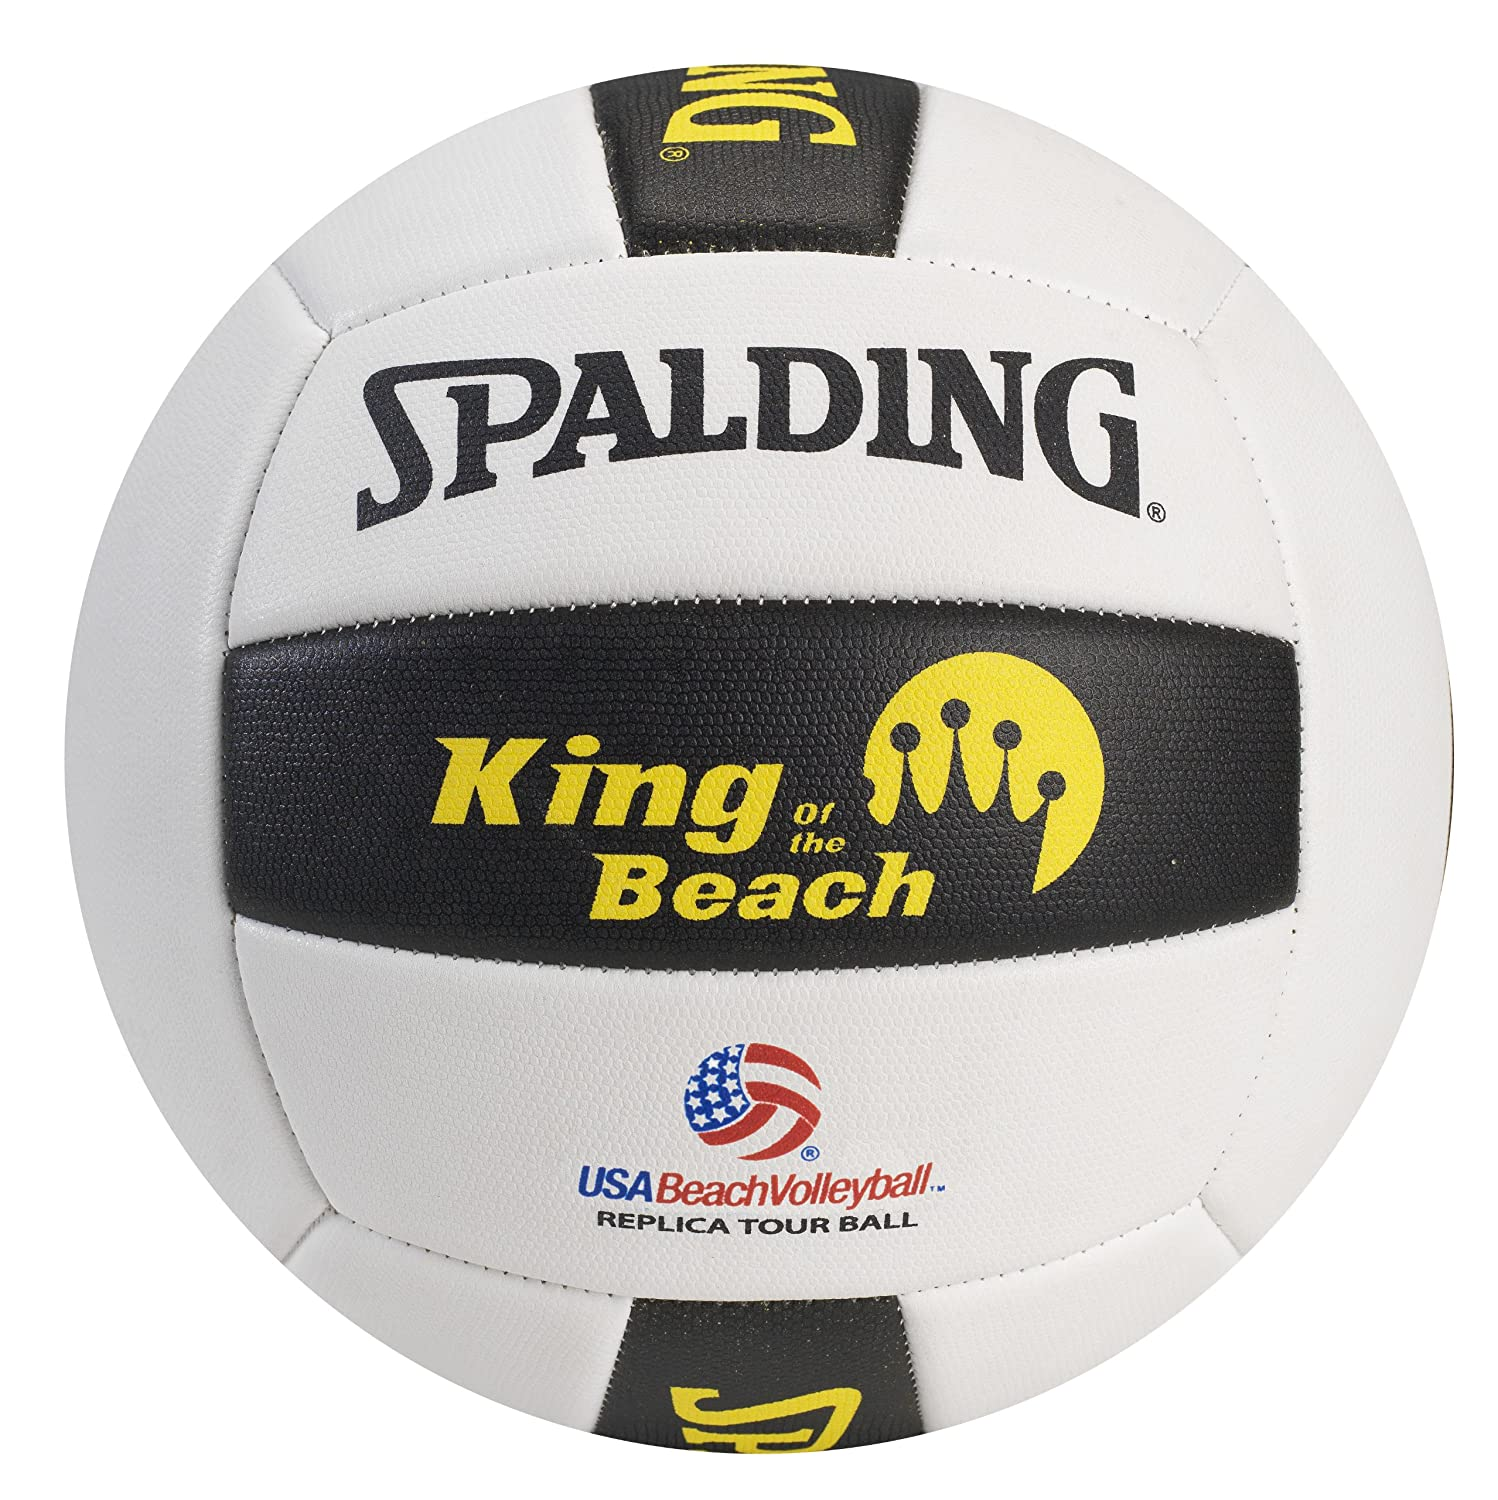 Spalding King of the Beach/USA Beach Replica Tour de volley-ball Spalding Sporting Goods 72126